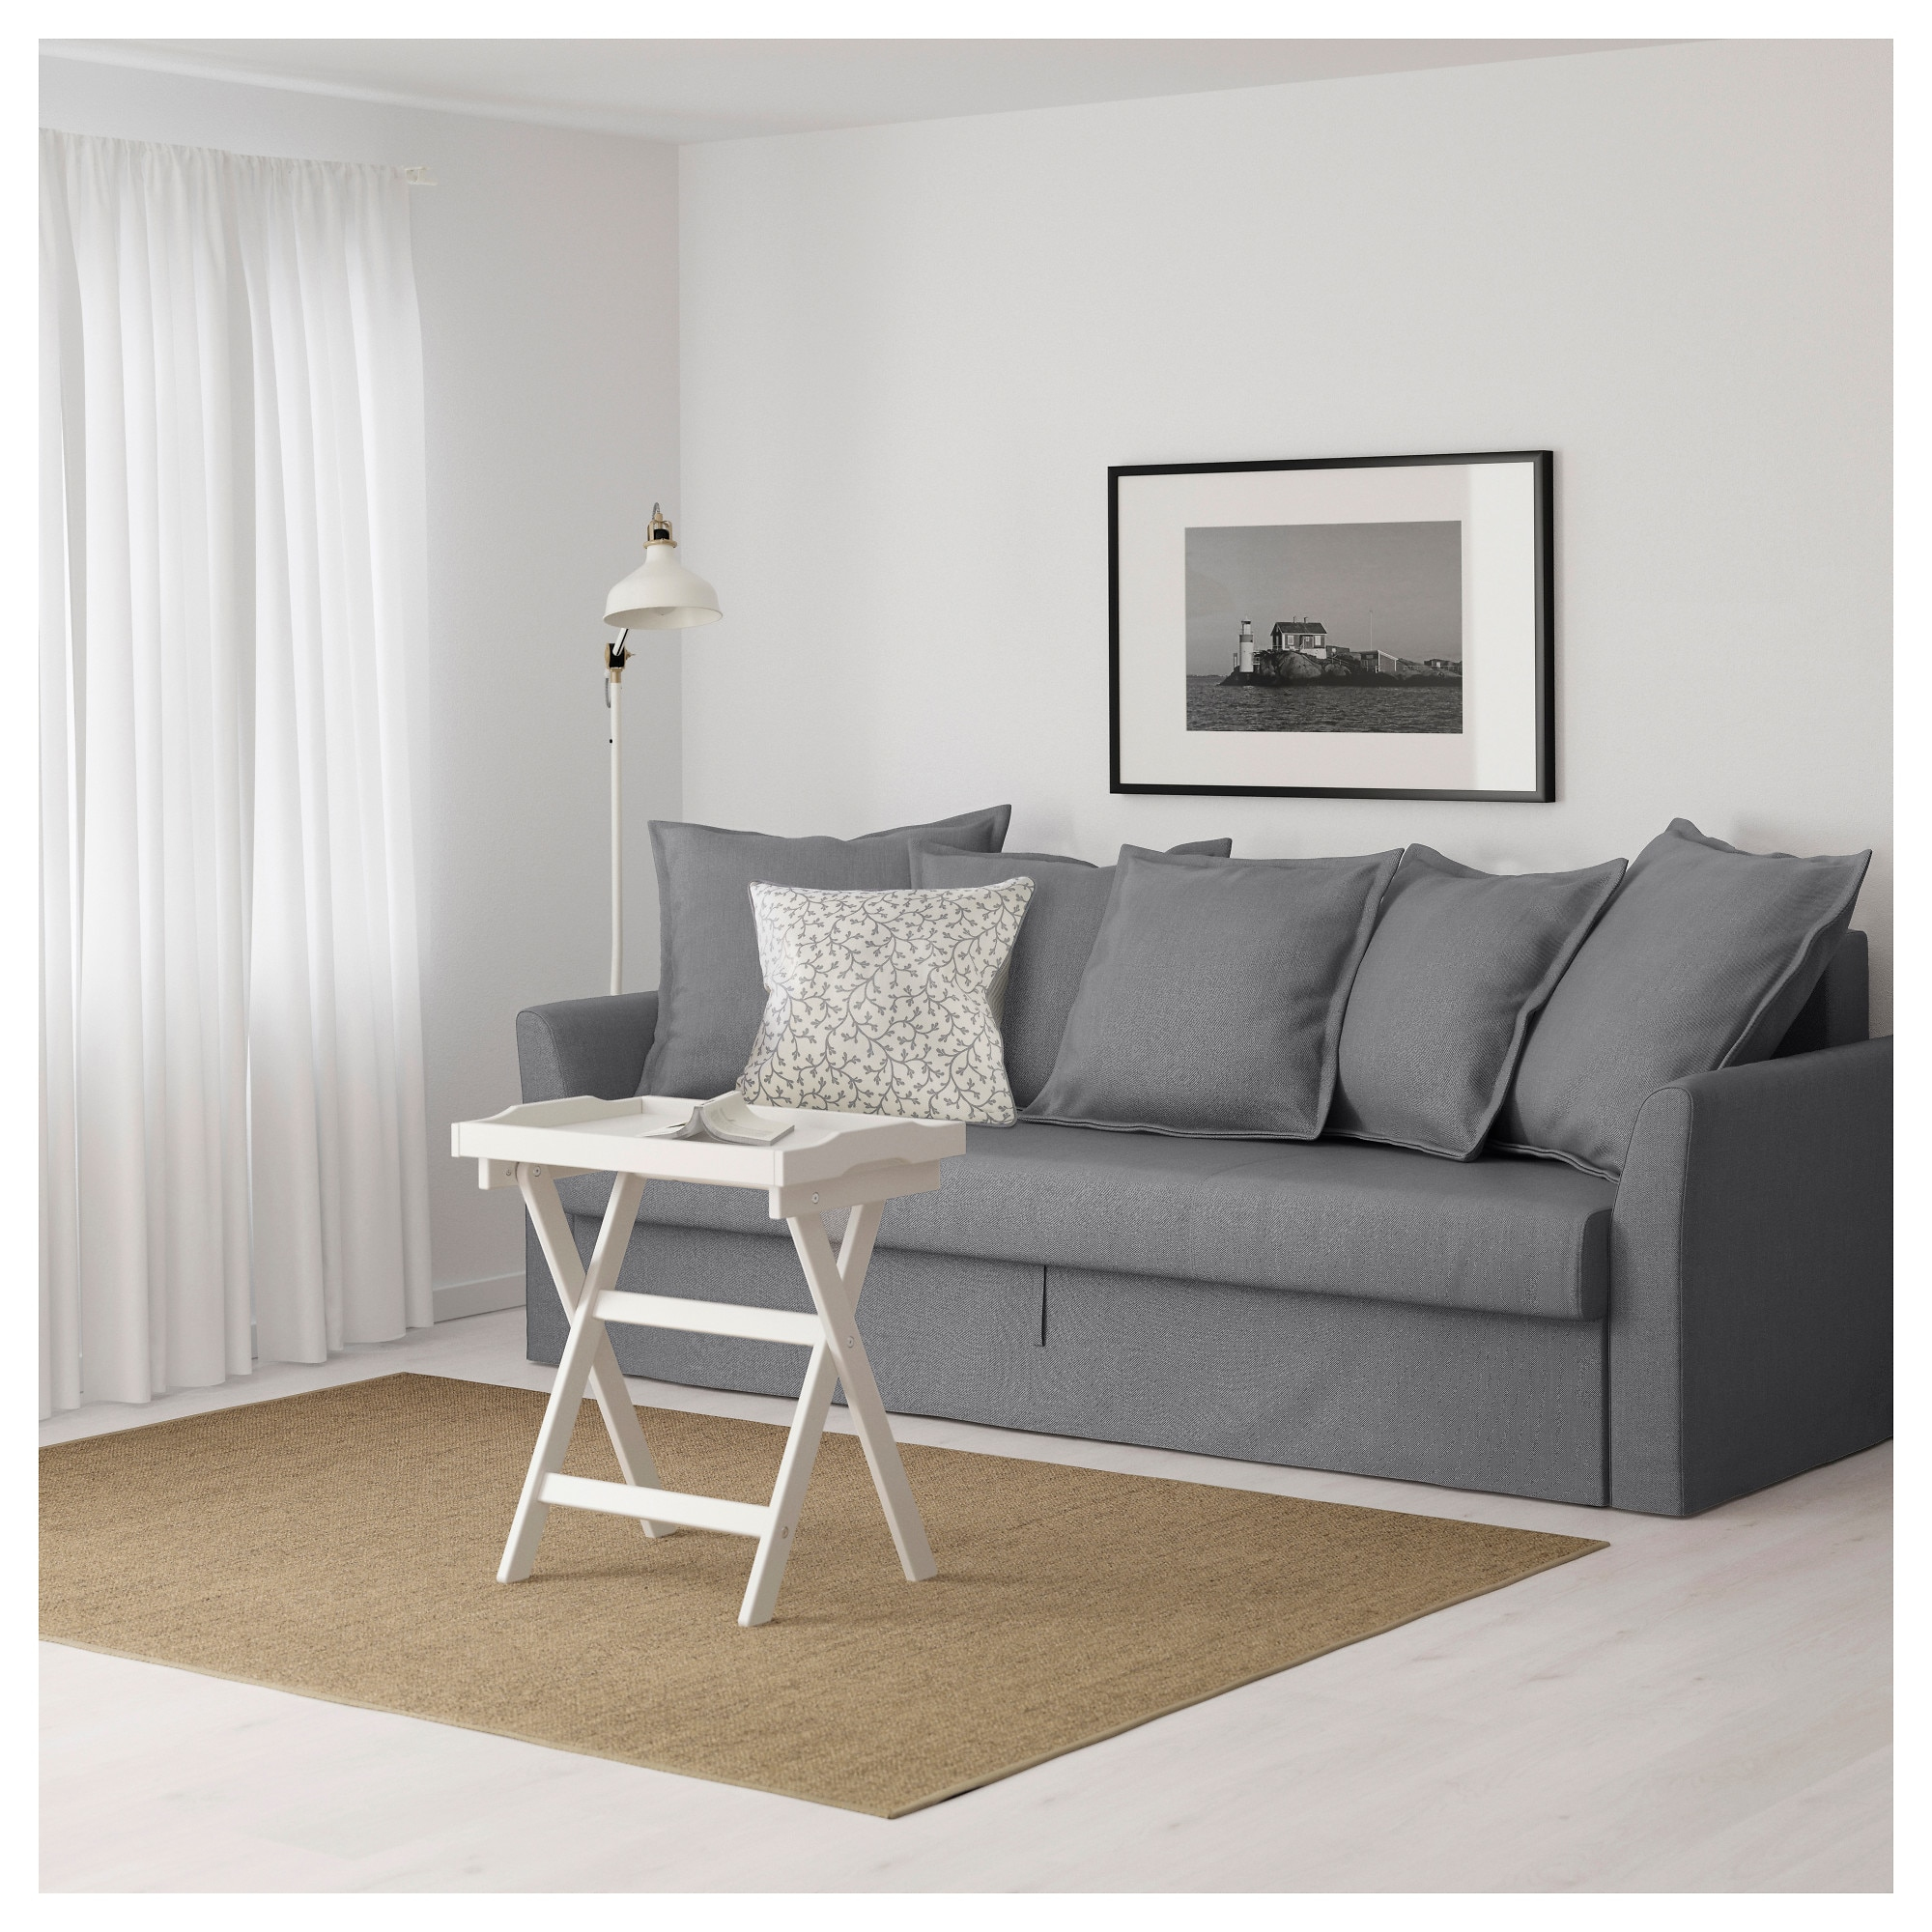 Housse Canape Ikea Ancien Modele Impressionnant Image Holmsund Convertible 3 Places orrsta Blanc Gris Clair Ikea